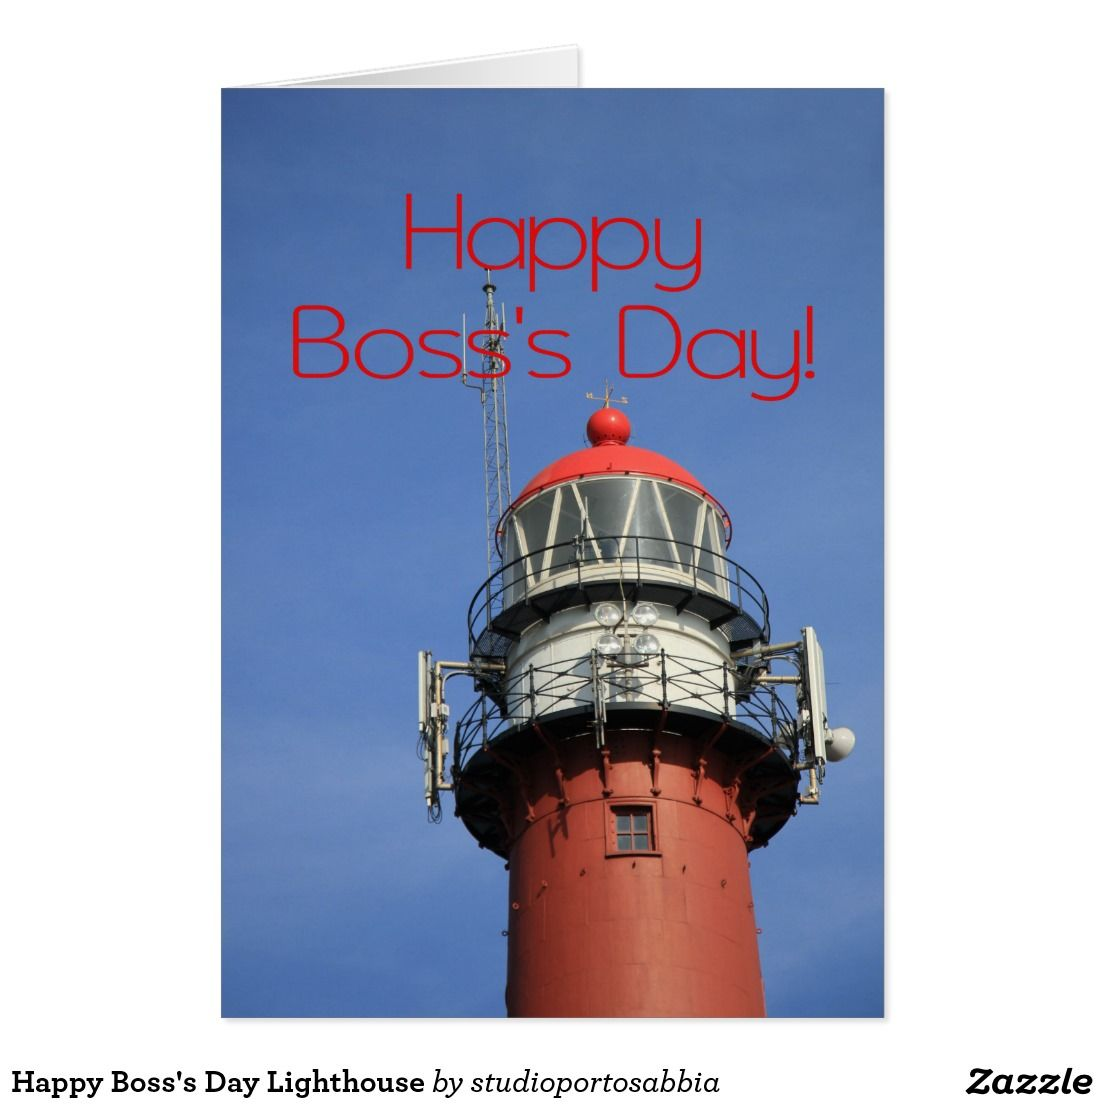 Happy bosss day lighthouse card lighthouse lighthouse happy bosss day lighthouse greeting card kristyandbryce Choice Image